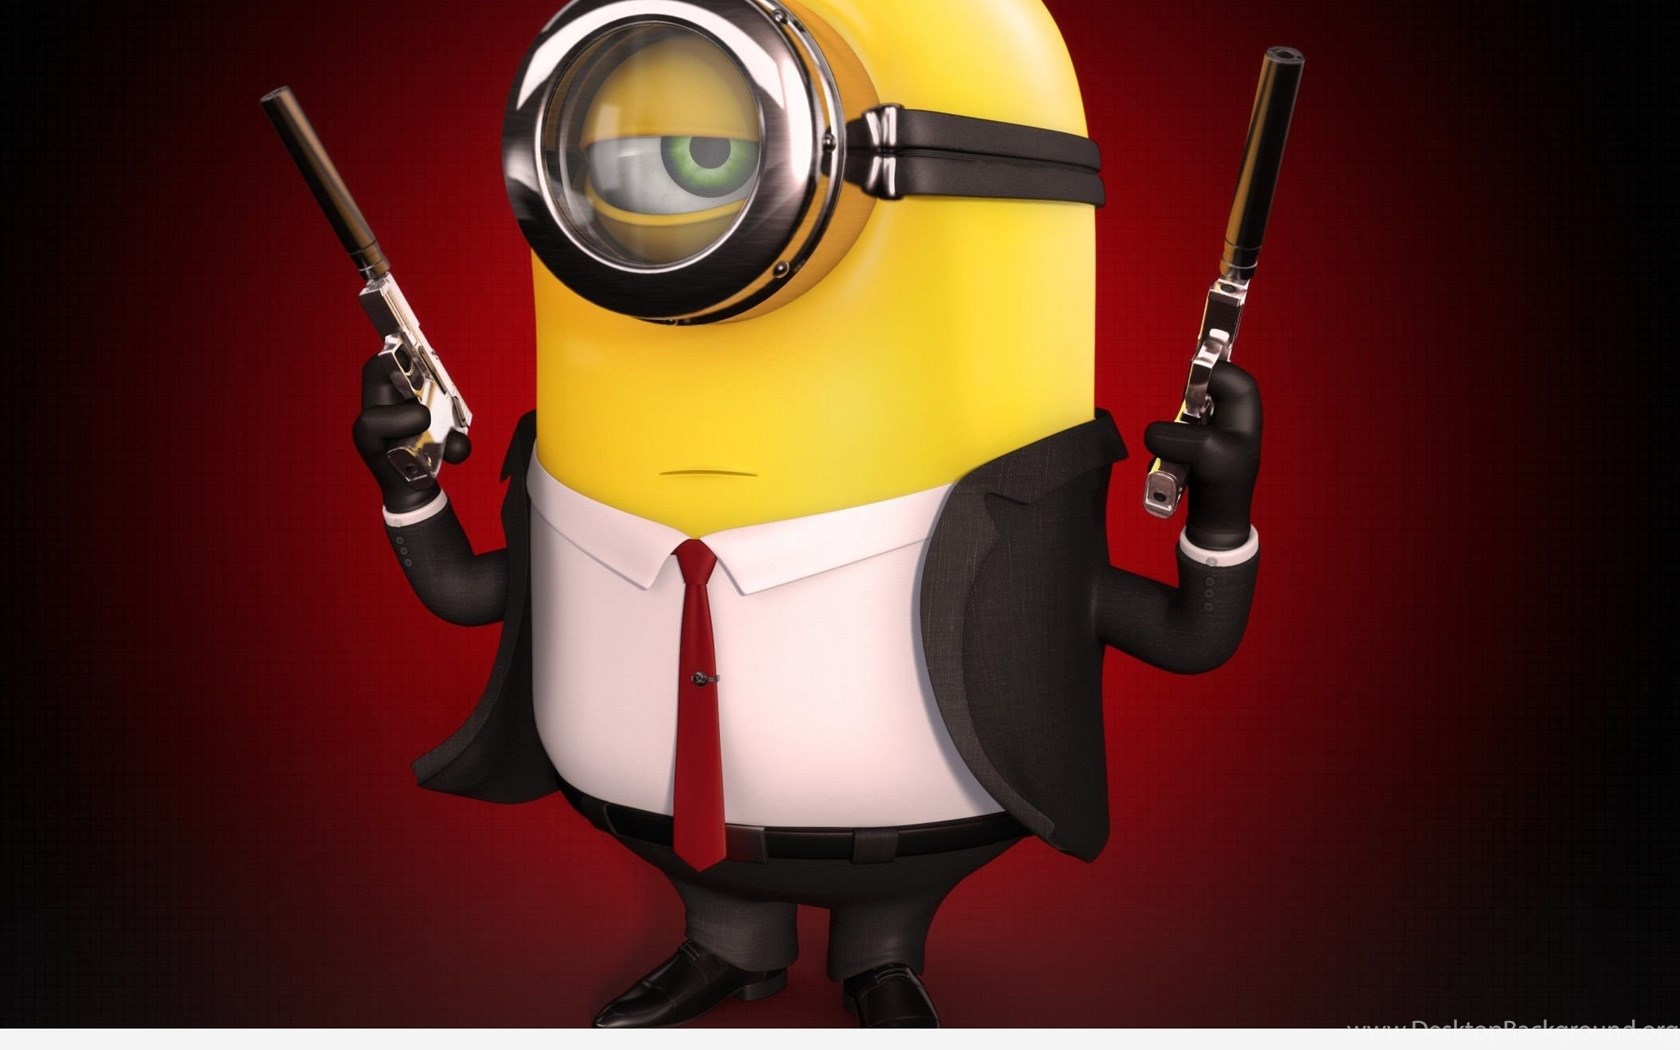 funny mobile wallpapers with minions 2015 2016 desktop background